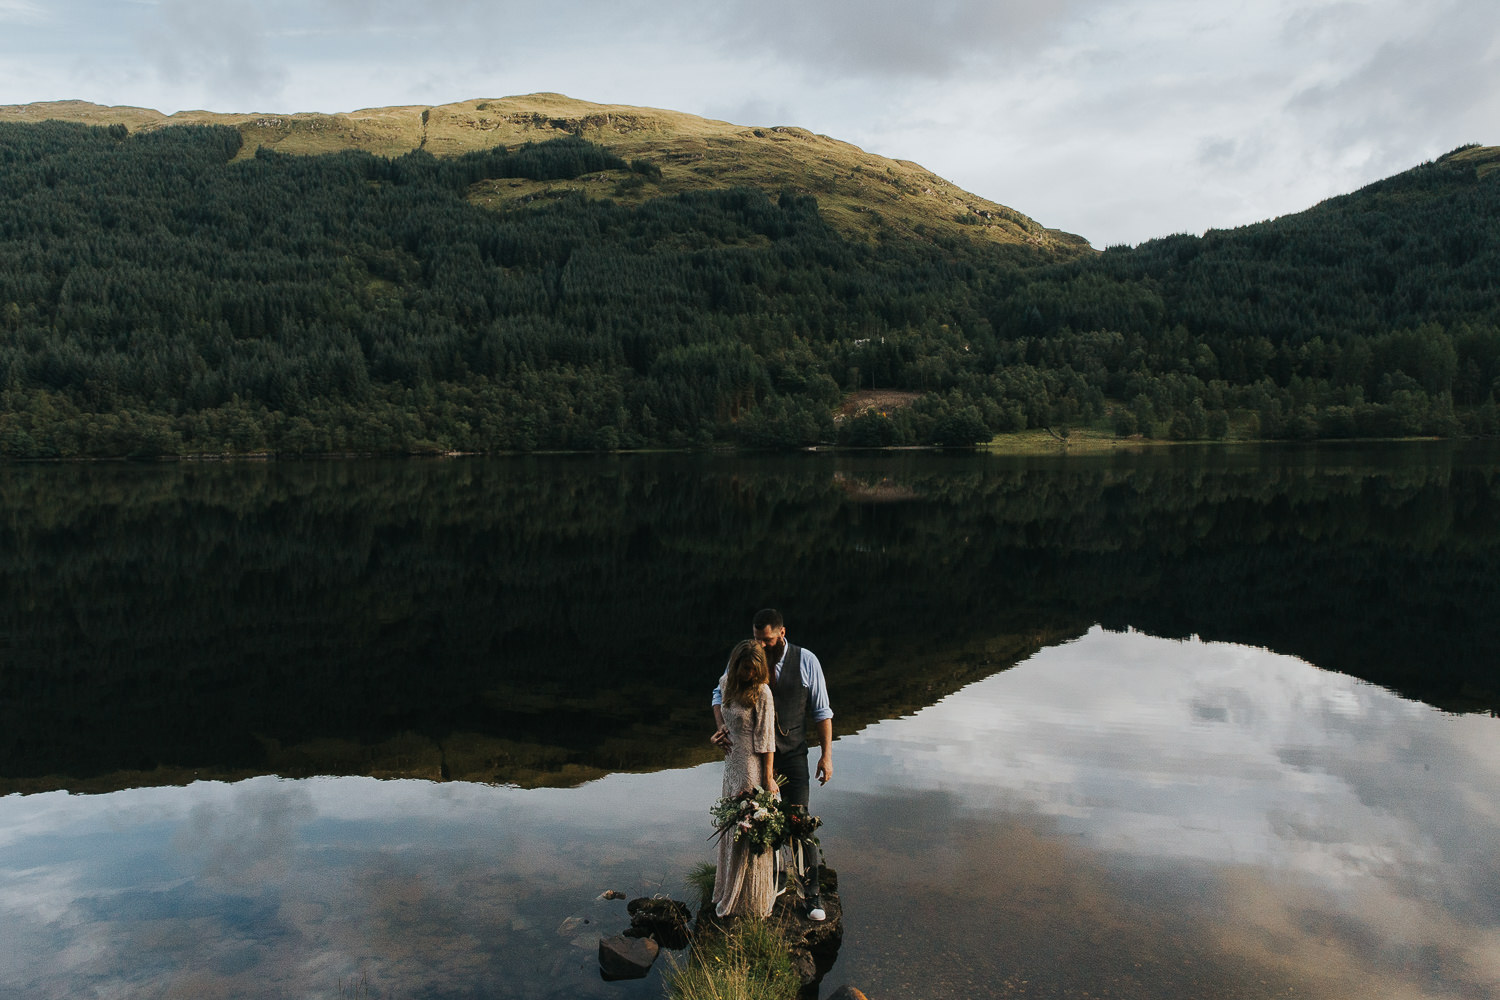 Loch-highland-elopement-wedding-3.jpg